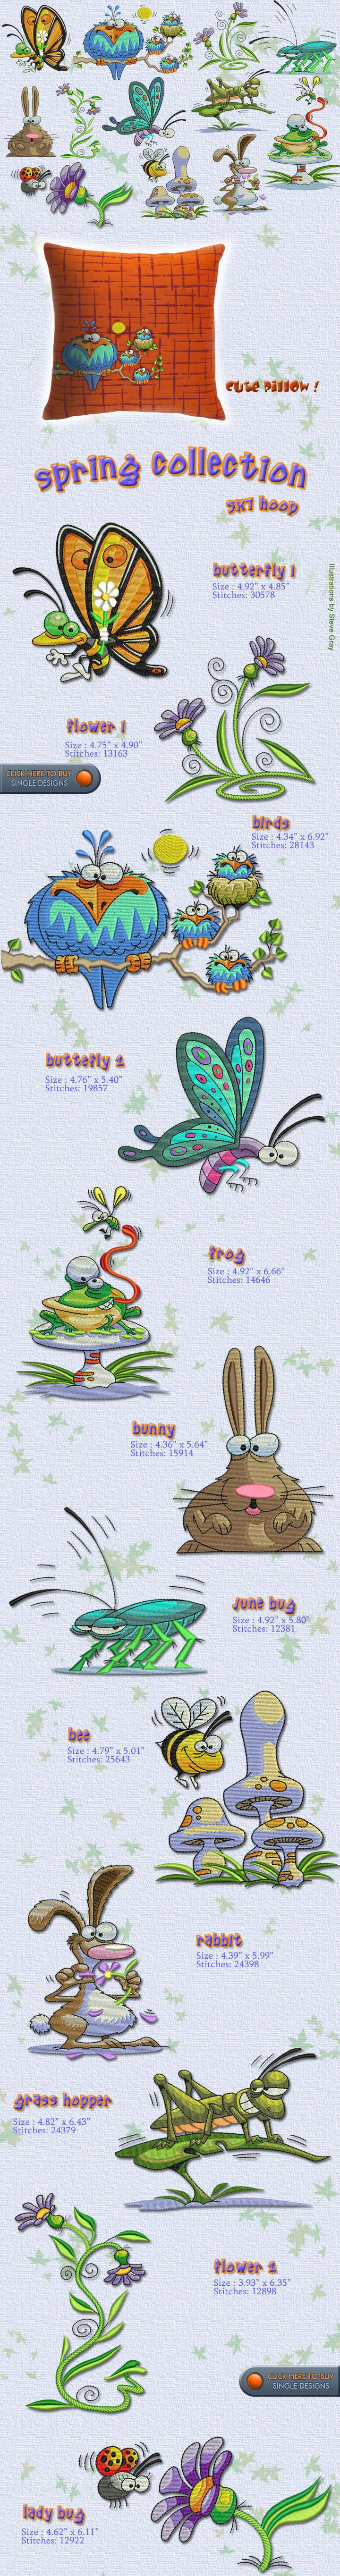 SPRING, BUGS, BUTTERFLY, BIRDS, FLOWERS Embroidery Designs Free Embroidery Design Patterns Applique